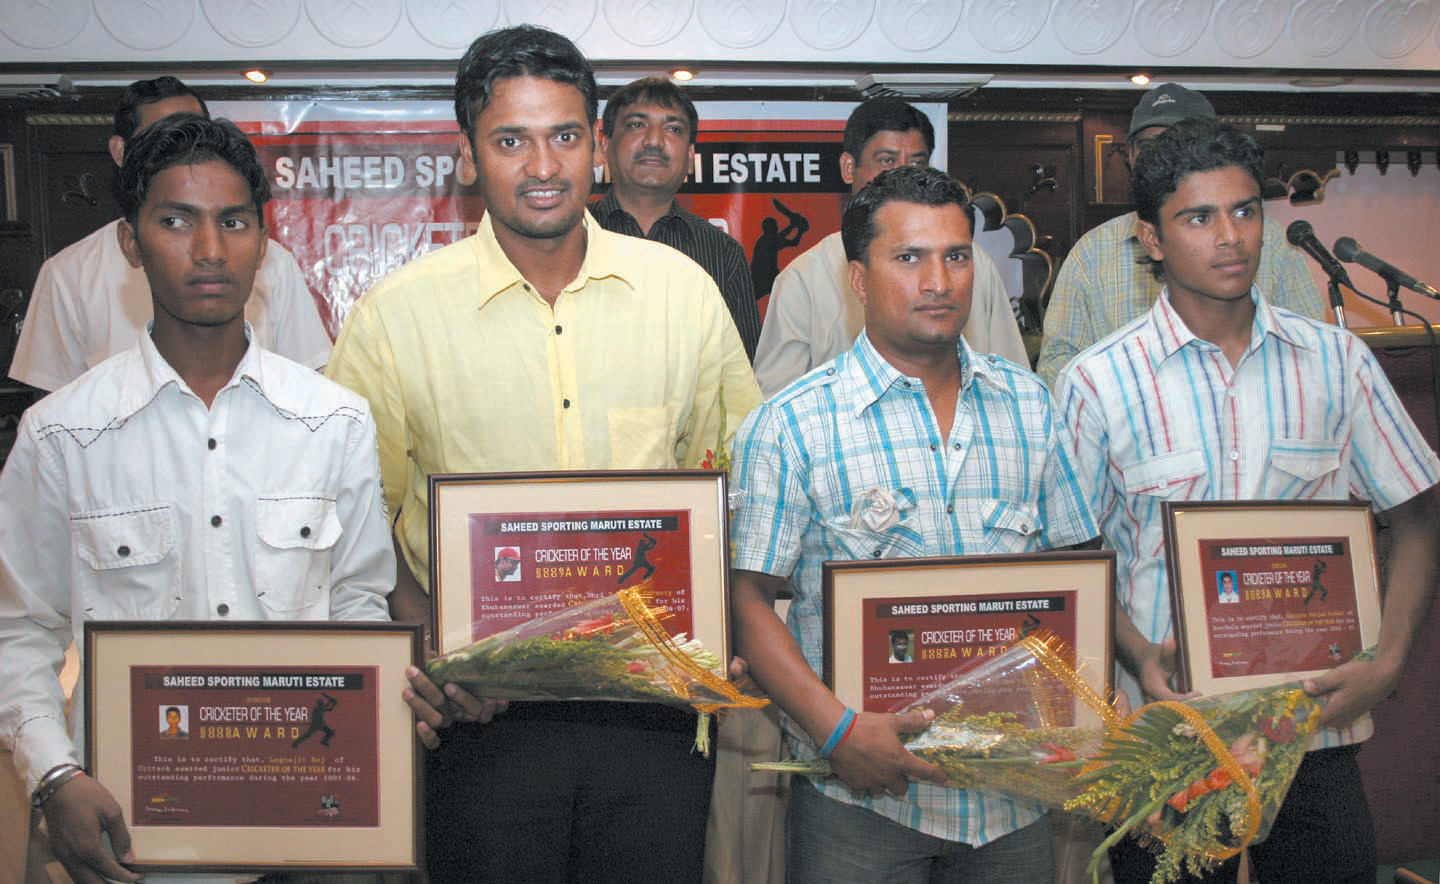 (Left to Right) Lagnajit Bej, Debasis Mohanty, Pravanjan Mullick and Govind Ranjan Podar with the Maruti Estate Saheed Sporting Cricketer of the Year Awards in Bhubaneswar on April 16, 2008.